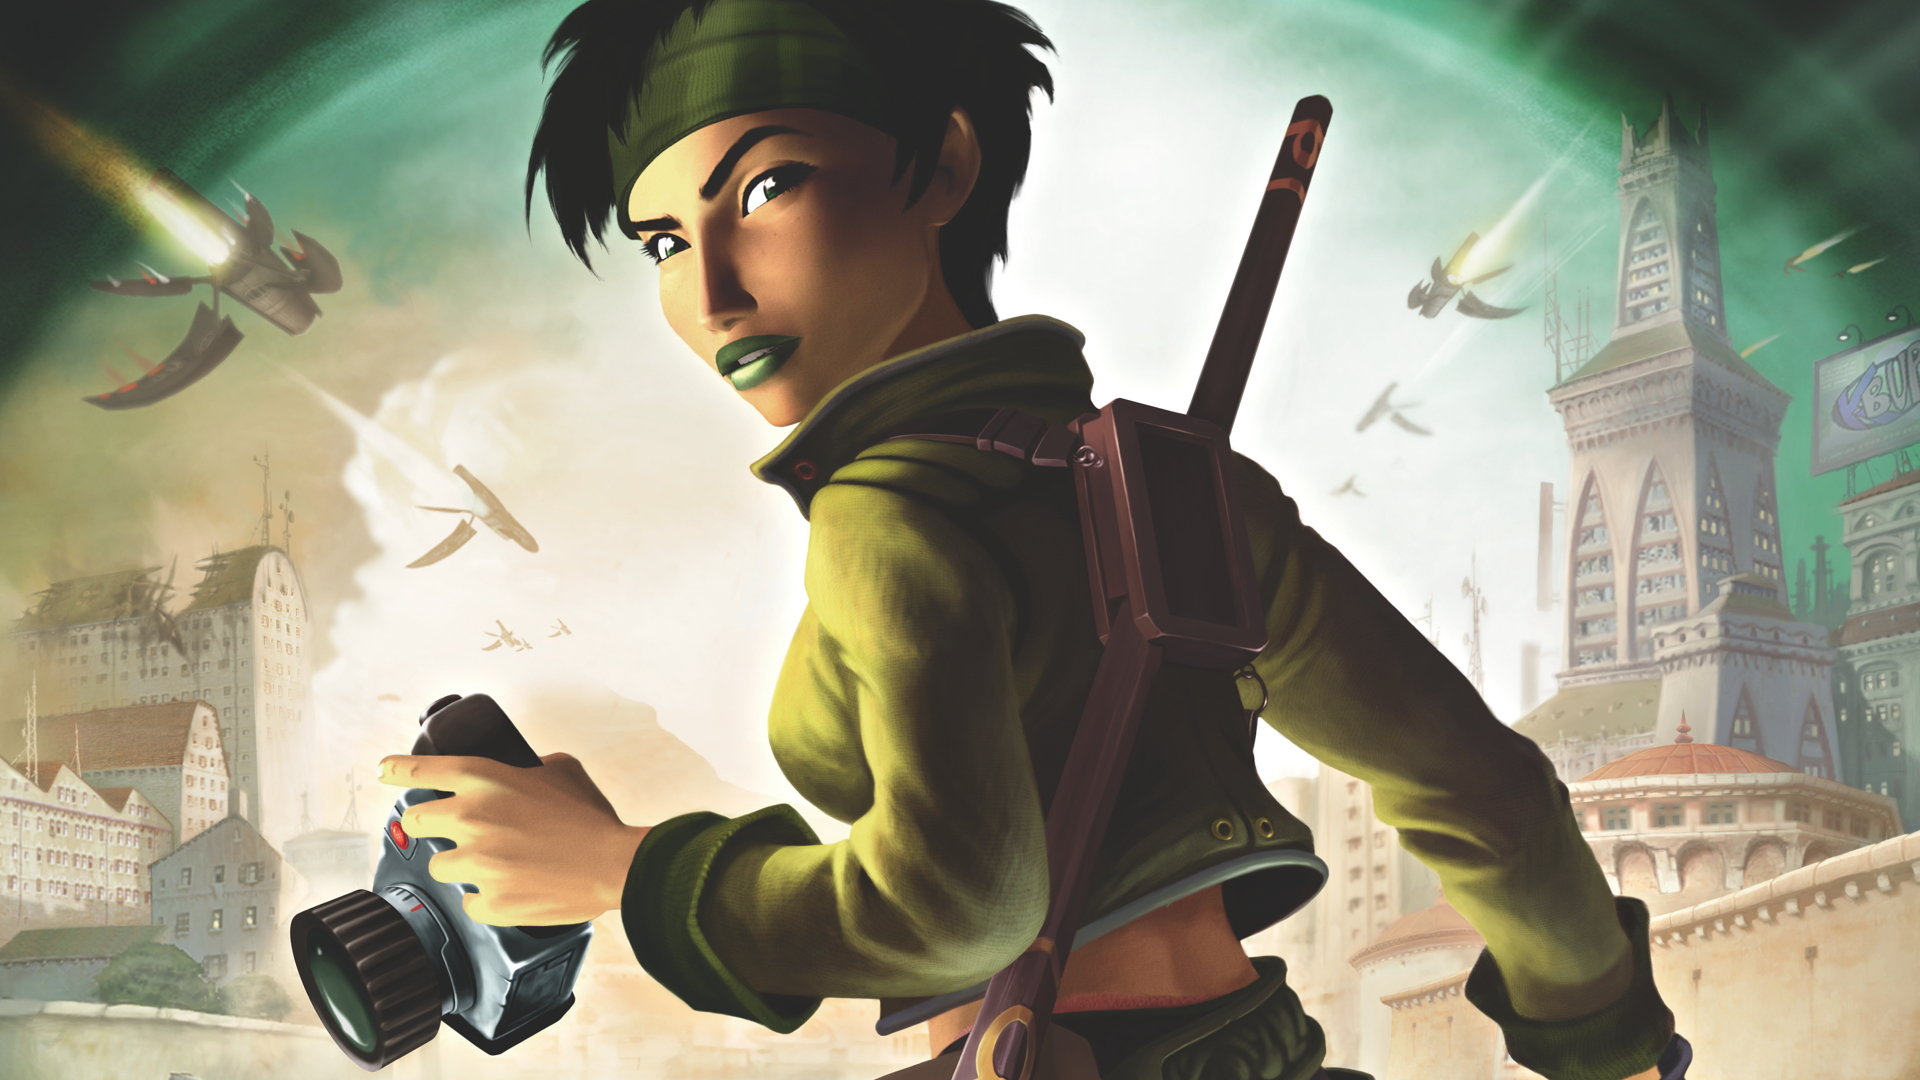 Here S Why Beyond Good Evil Is A Sci Fi Classic People Still